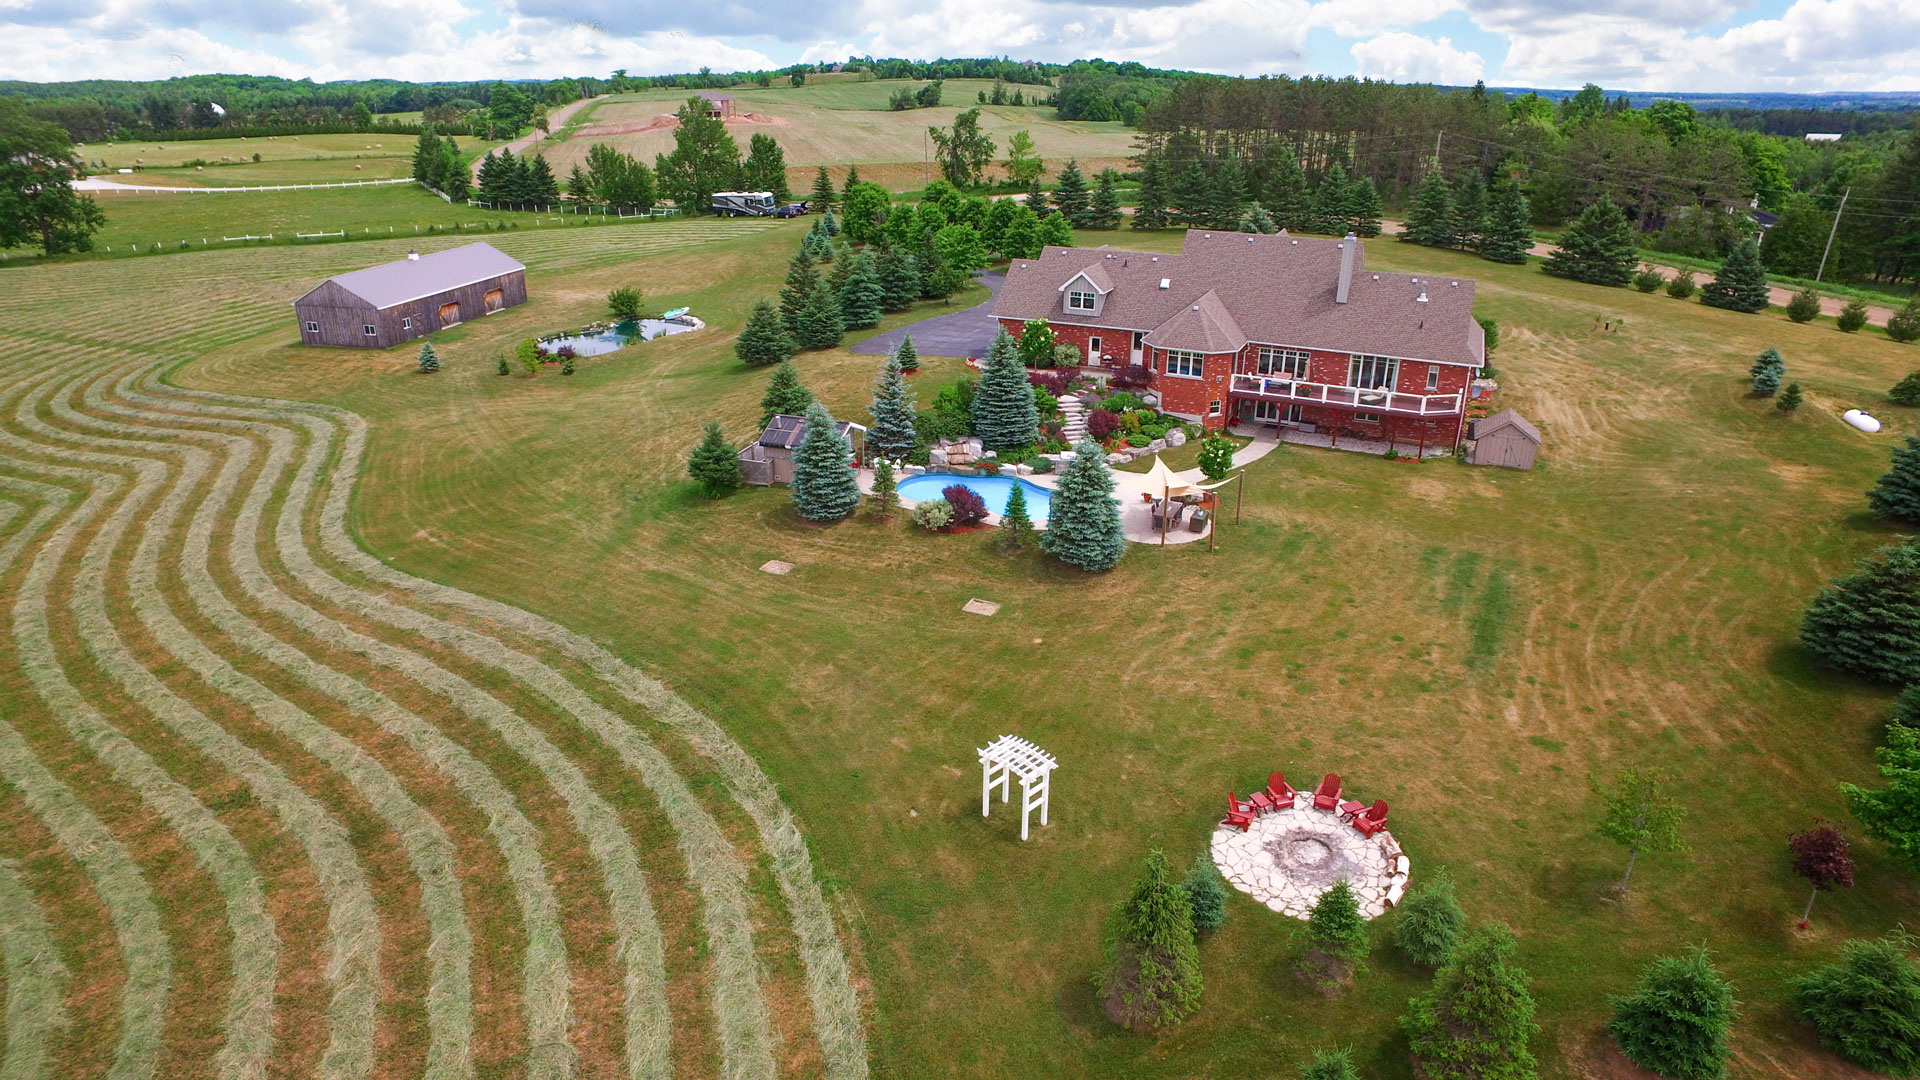 3 Bedroom Bungalow for sale, Caledon, 14.83 Acres For Sale,